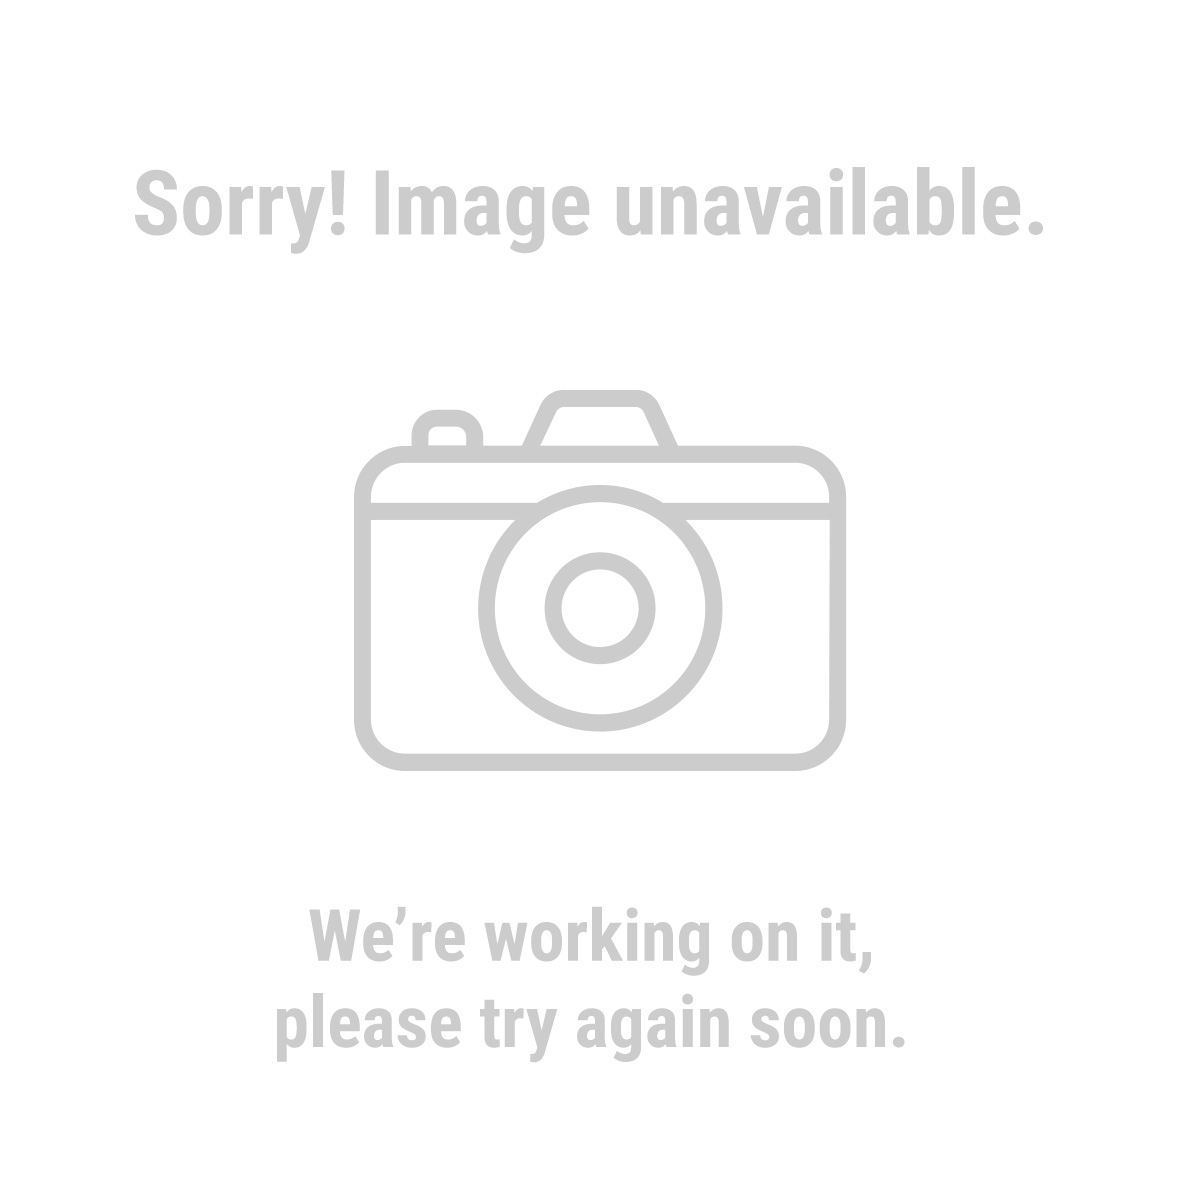 Gordon 62784 13 Pc Precision Knife Set